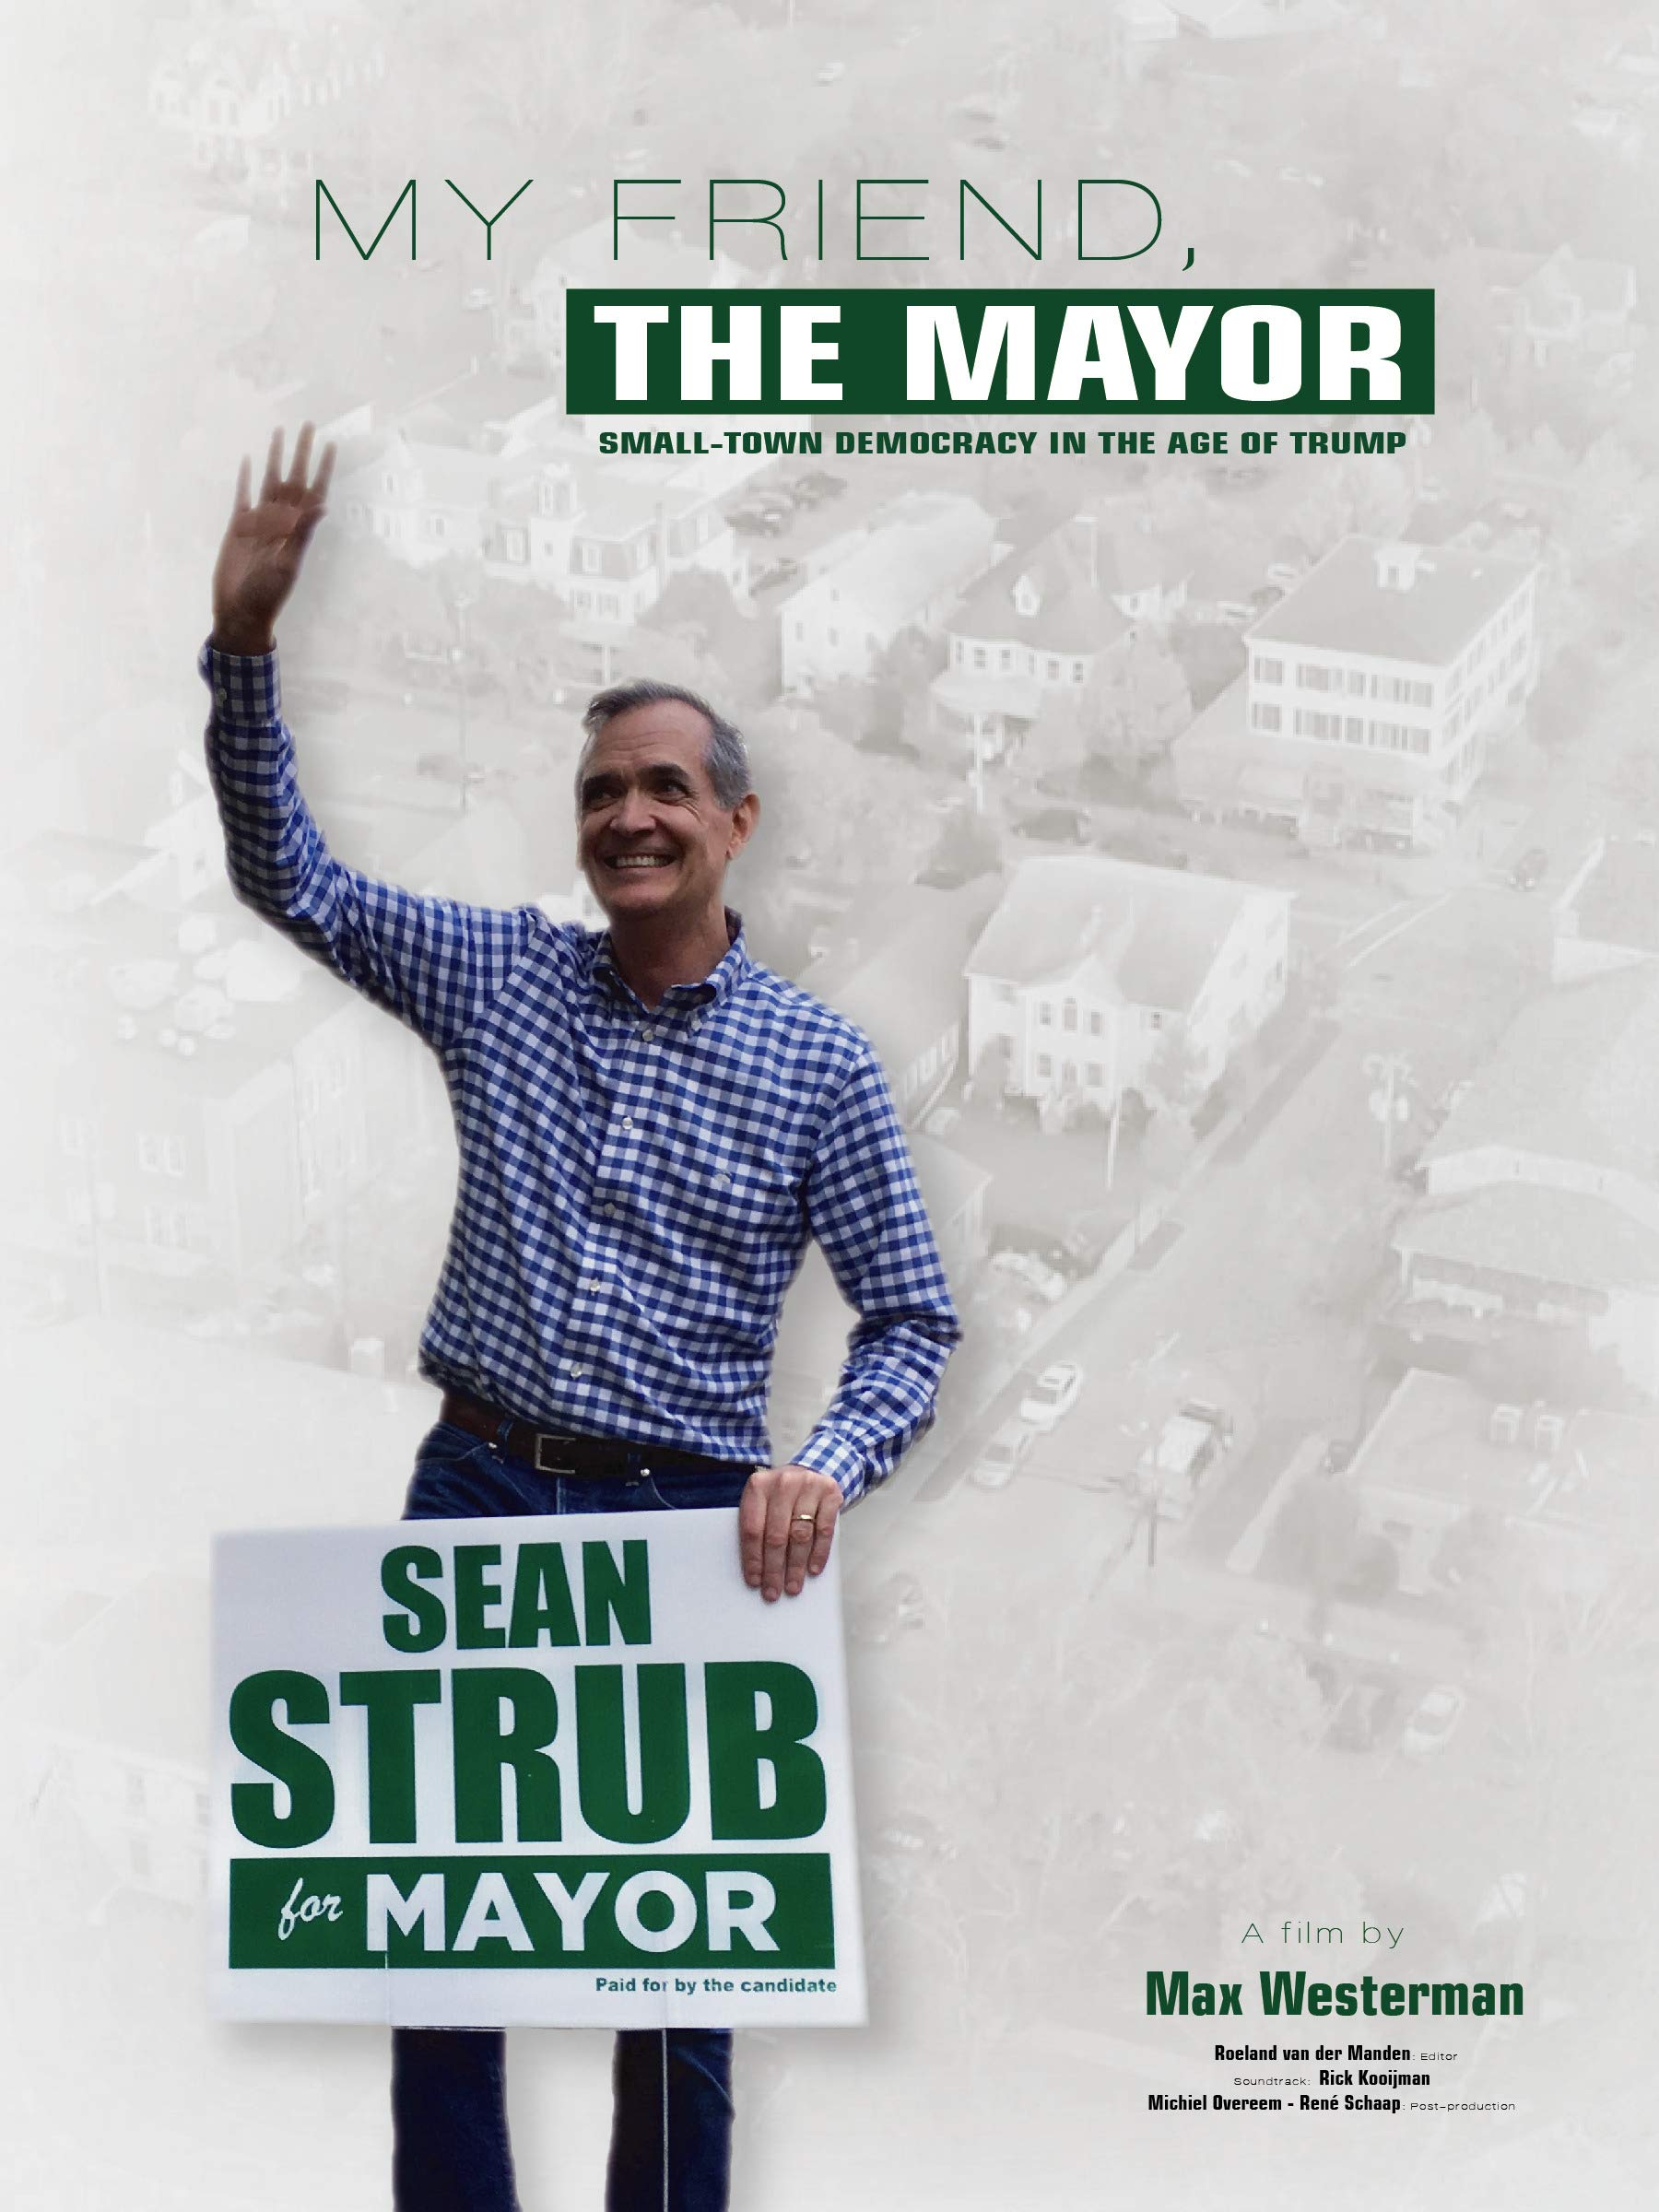 My Friend, The Mayor; Small-town Politics in the Age of Trump